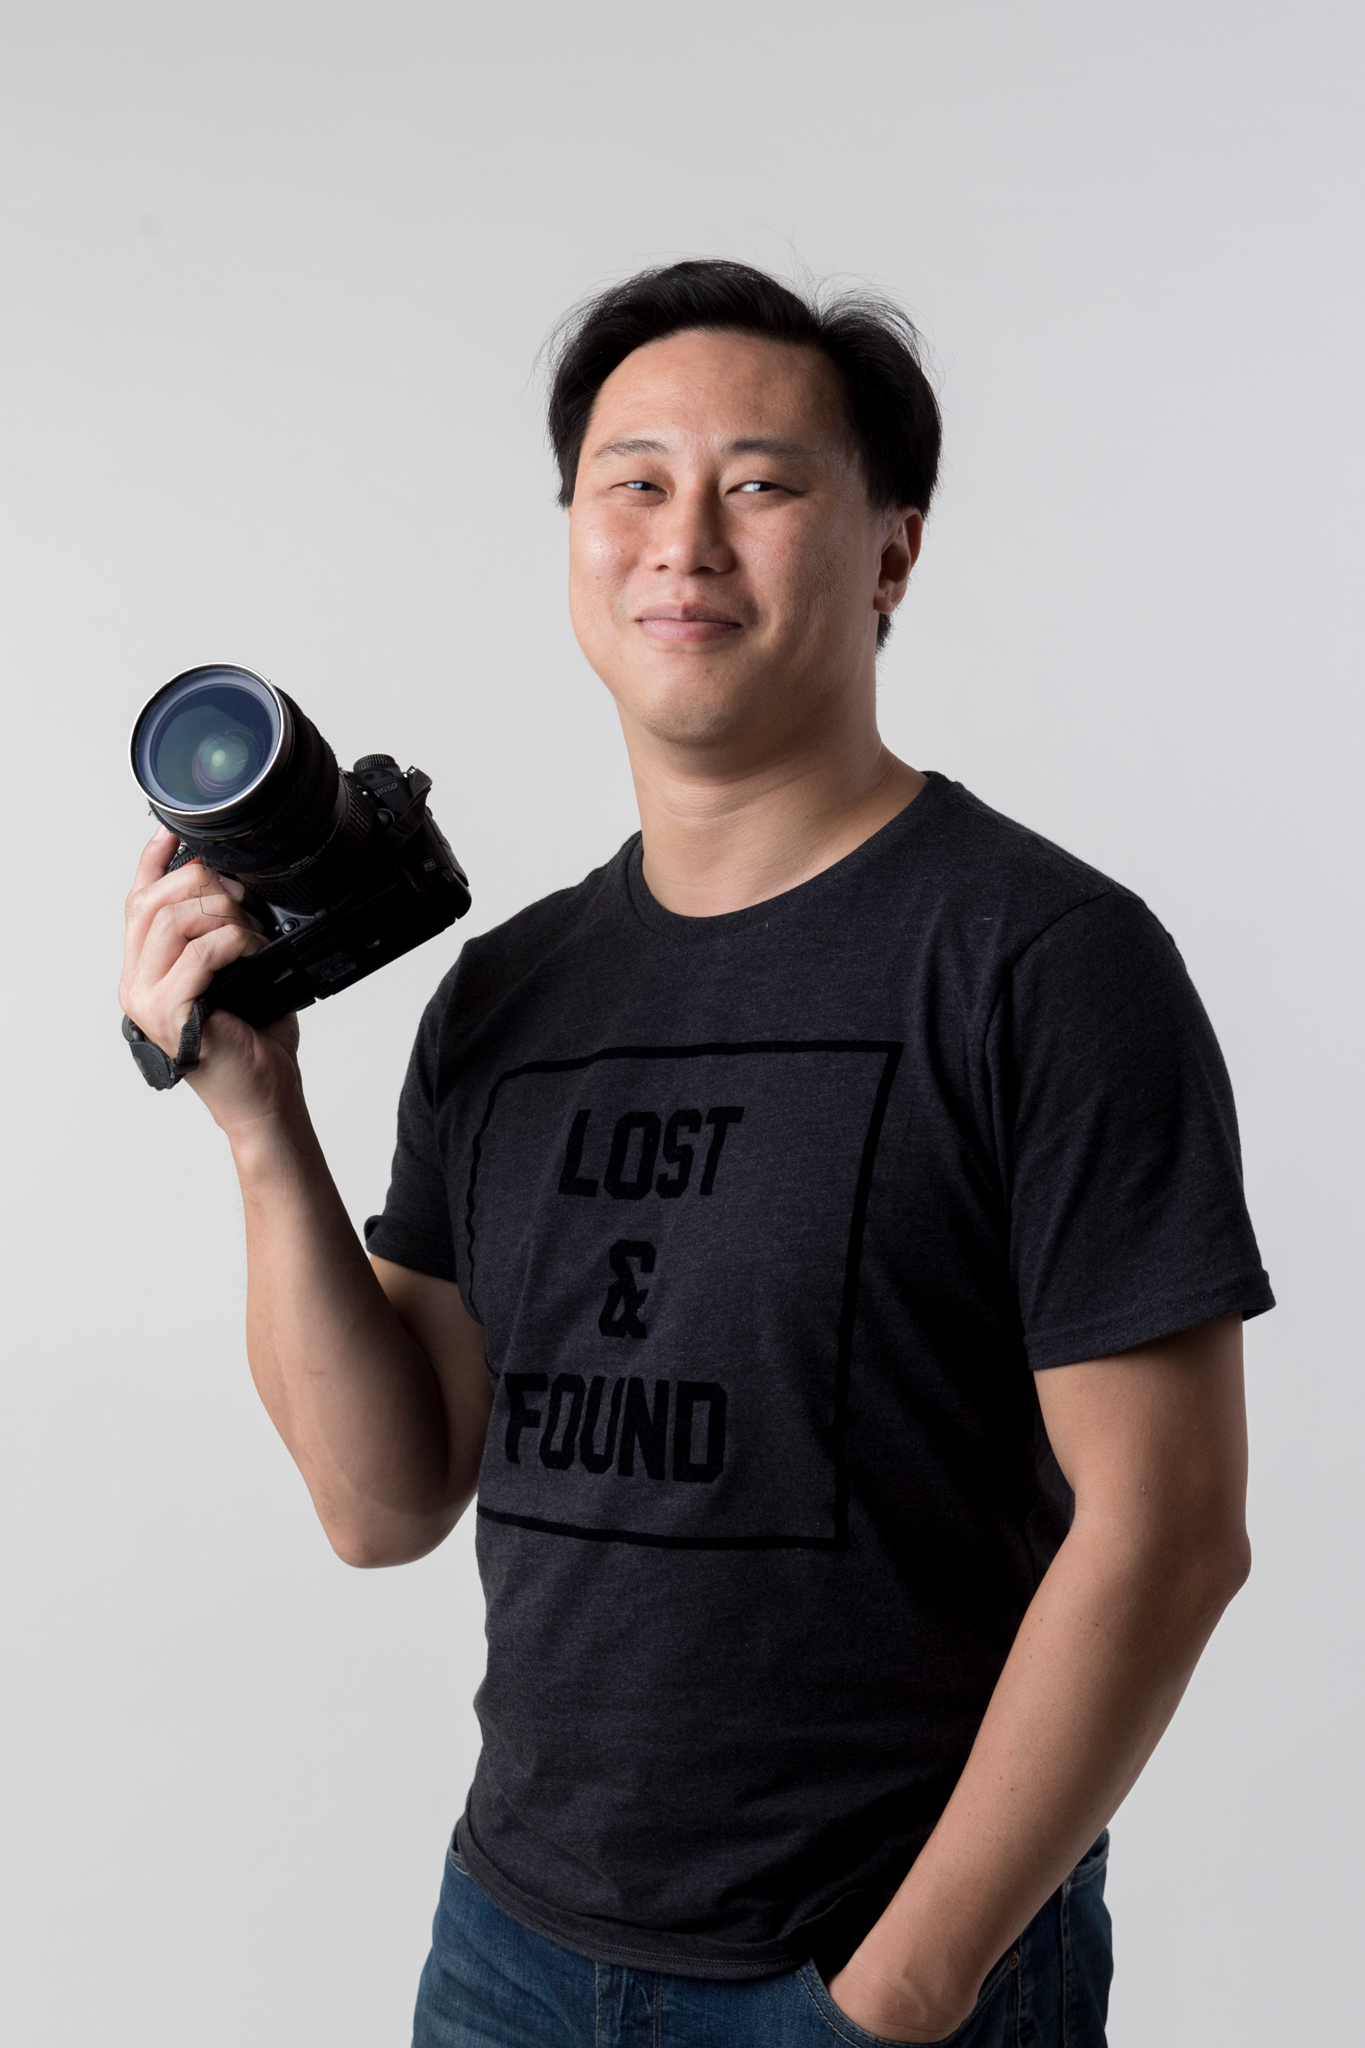 I'm a fabulous handsome photographer that once the bridesmaids sees me they will cut short and make the gate crashing games 50% easier. I'll also dazzle them with my flashing so much that they will expect $50 lesser hong bao money at the final gate  David Goh